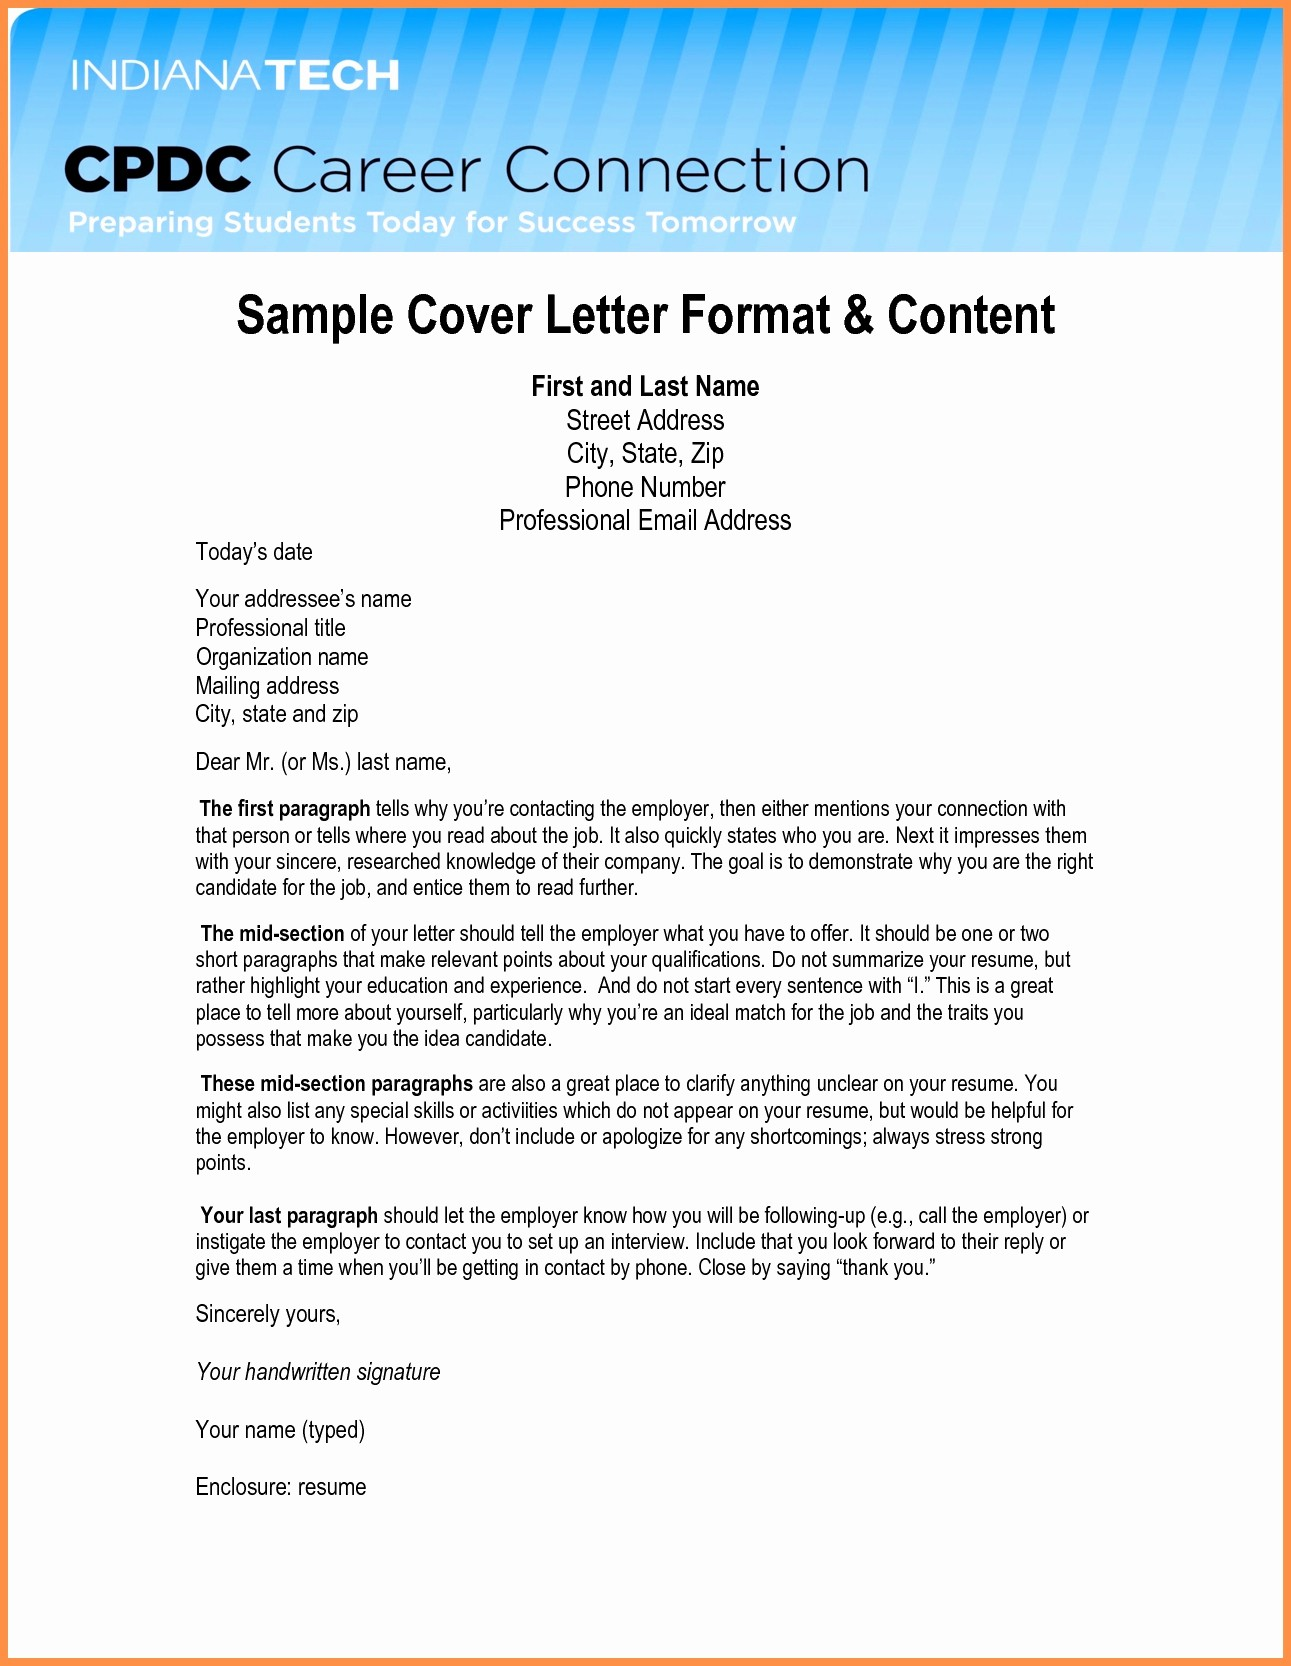 Resume Templates On Word 2007 Unique How Do I Open A Resume Template In Word 2007